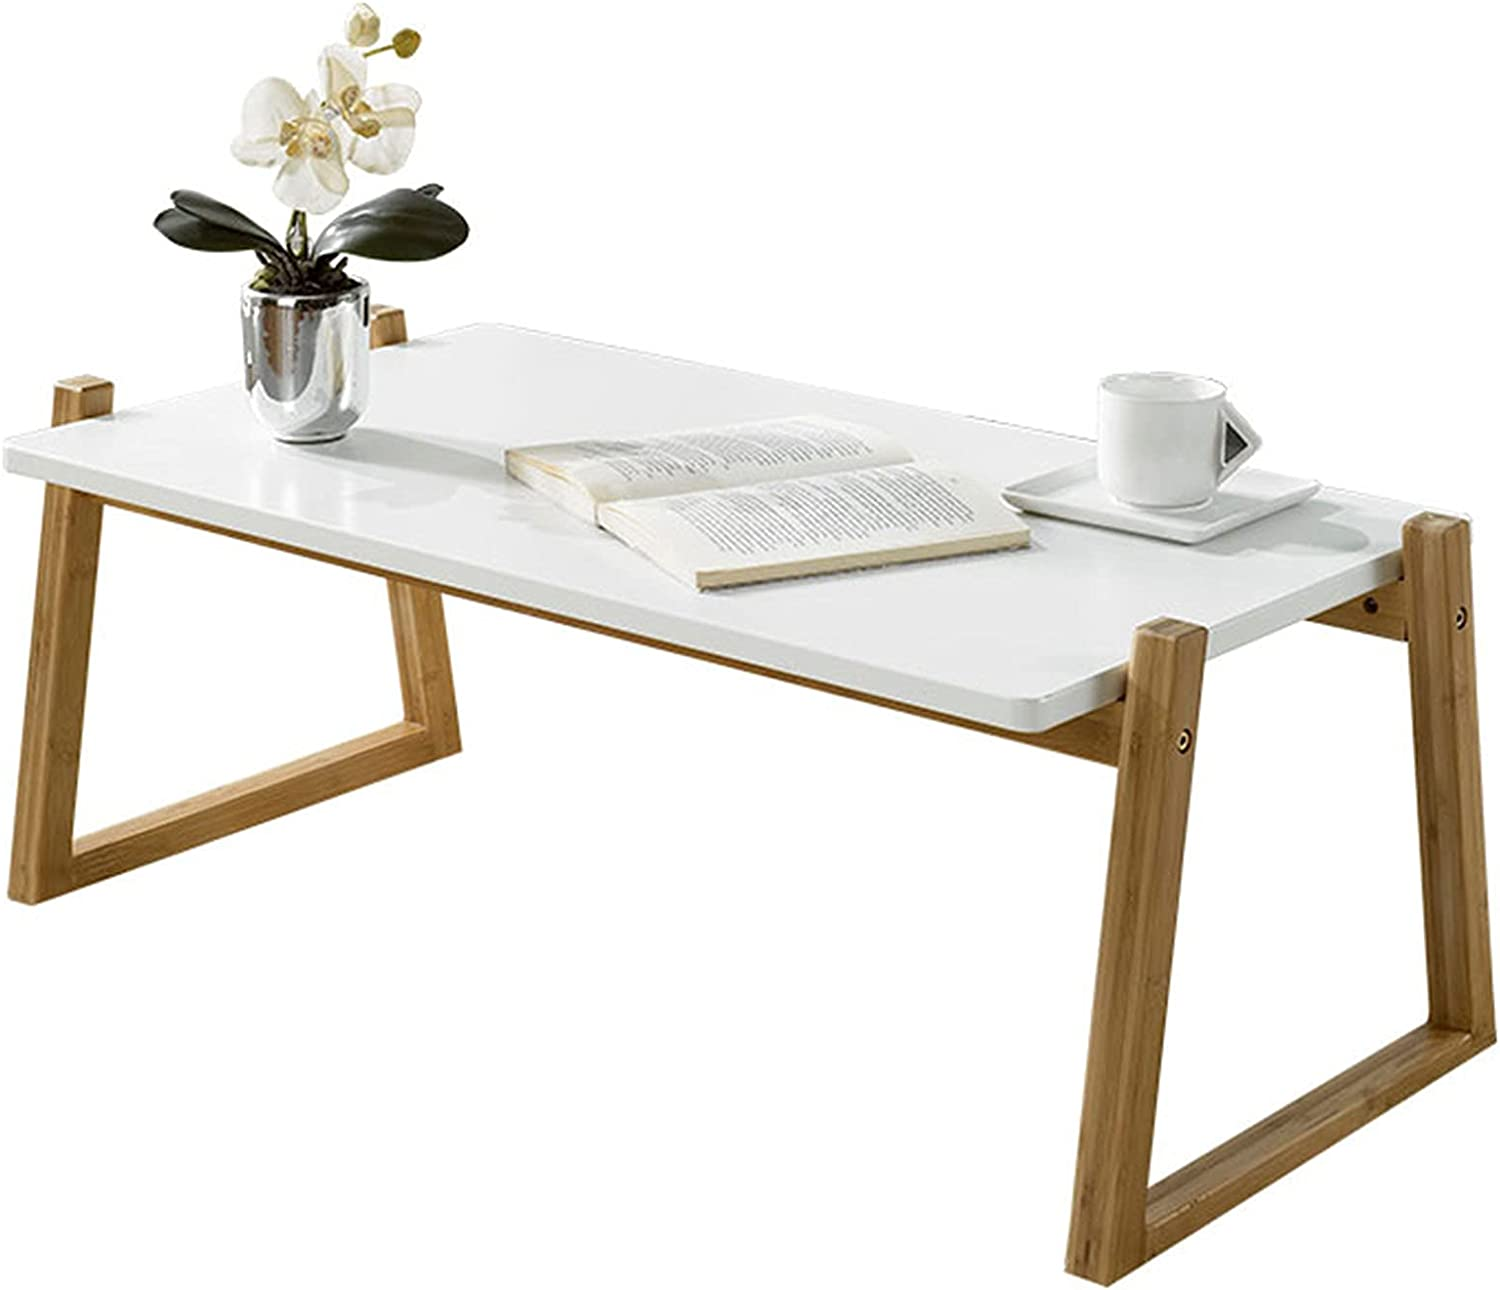 Easy-to-use WUDAXIAN New products, world's highest quality popular! Coffee Table Snack End wit Tables Sofa Industrial